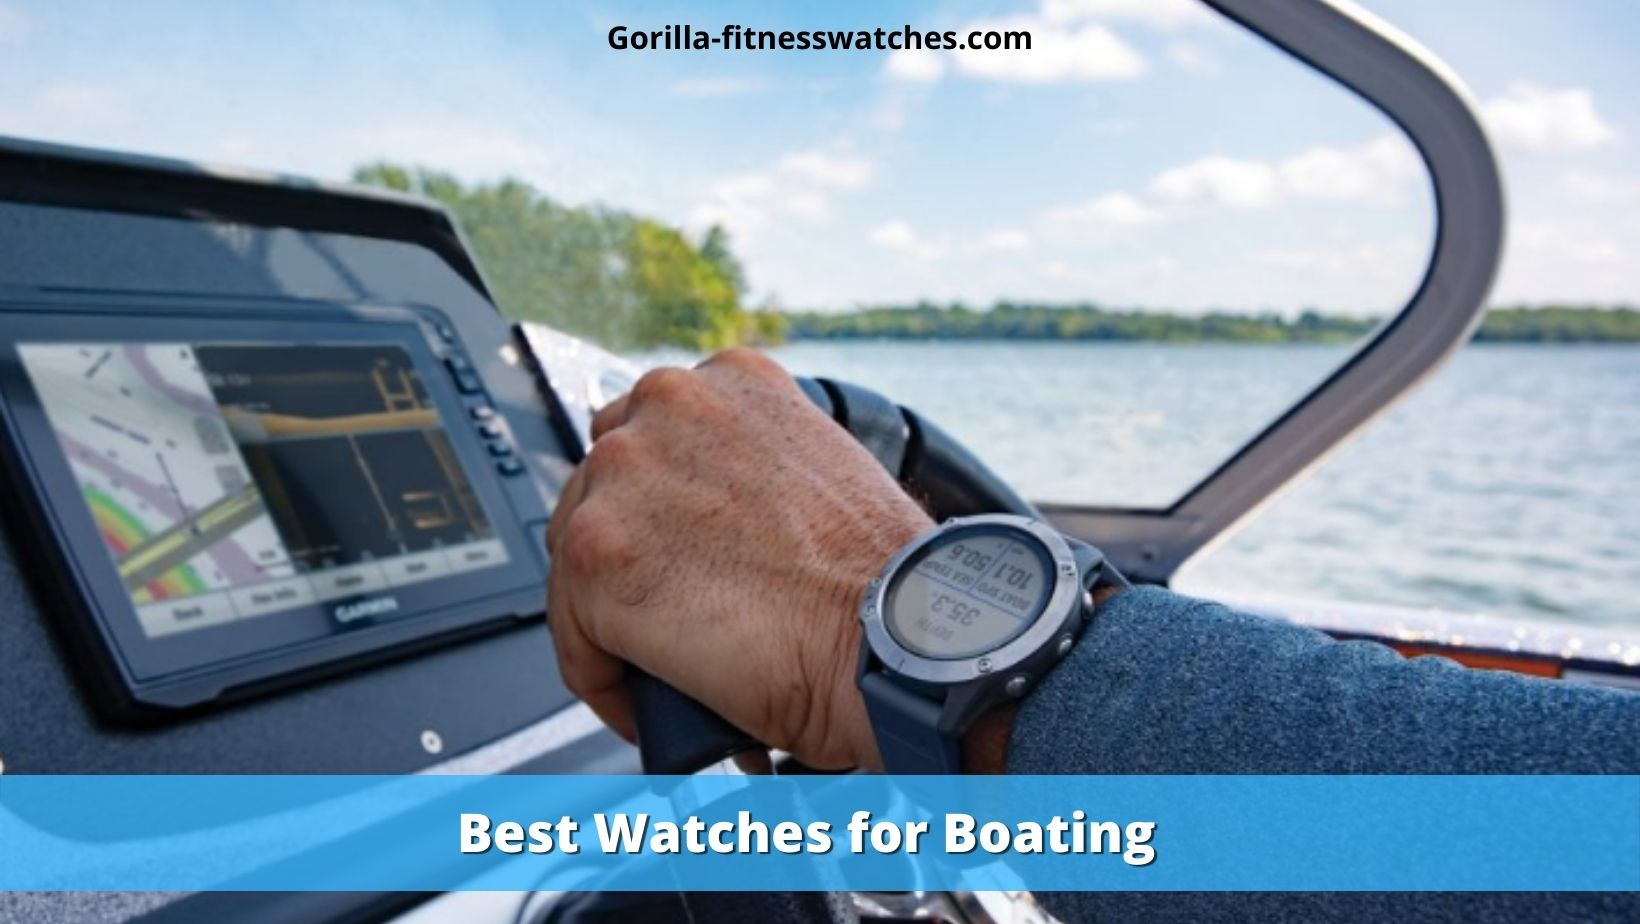 Best Watches for Boating